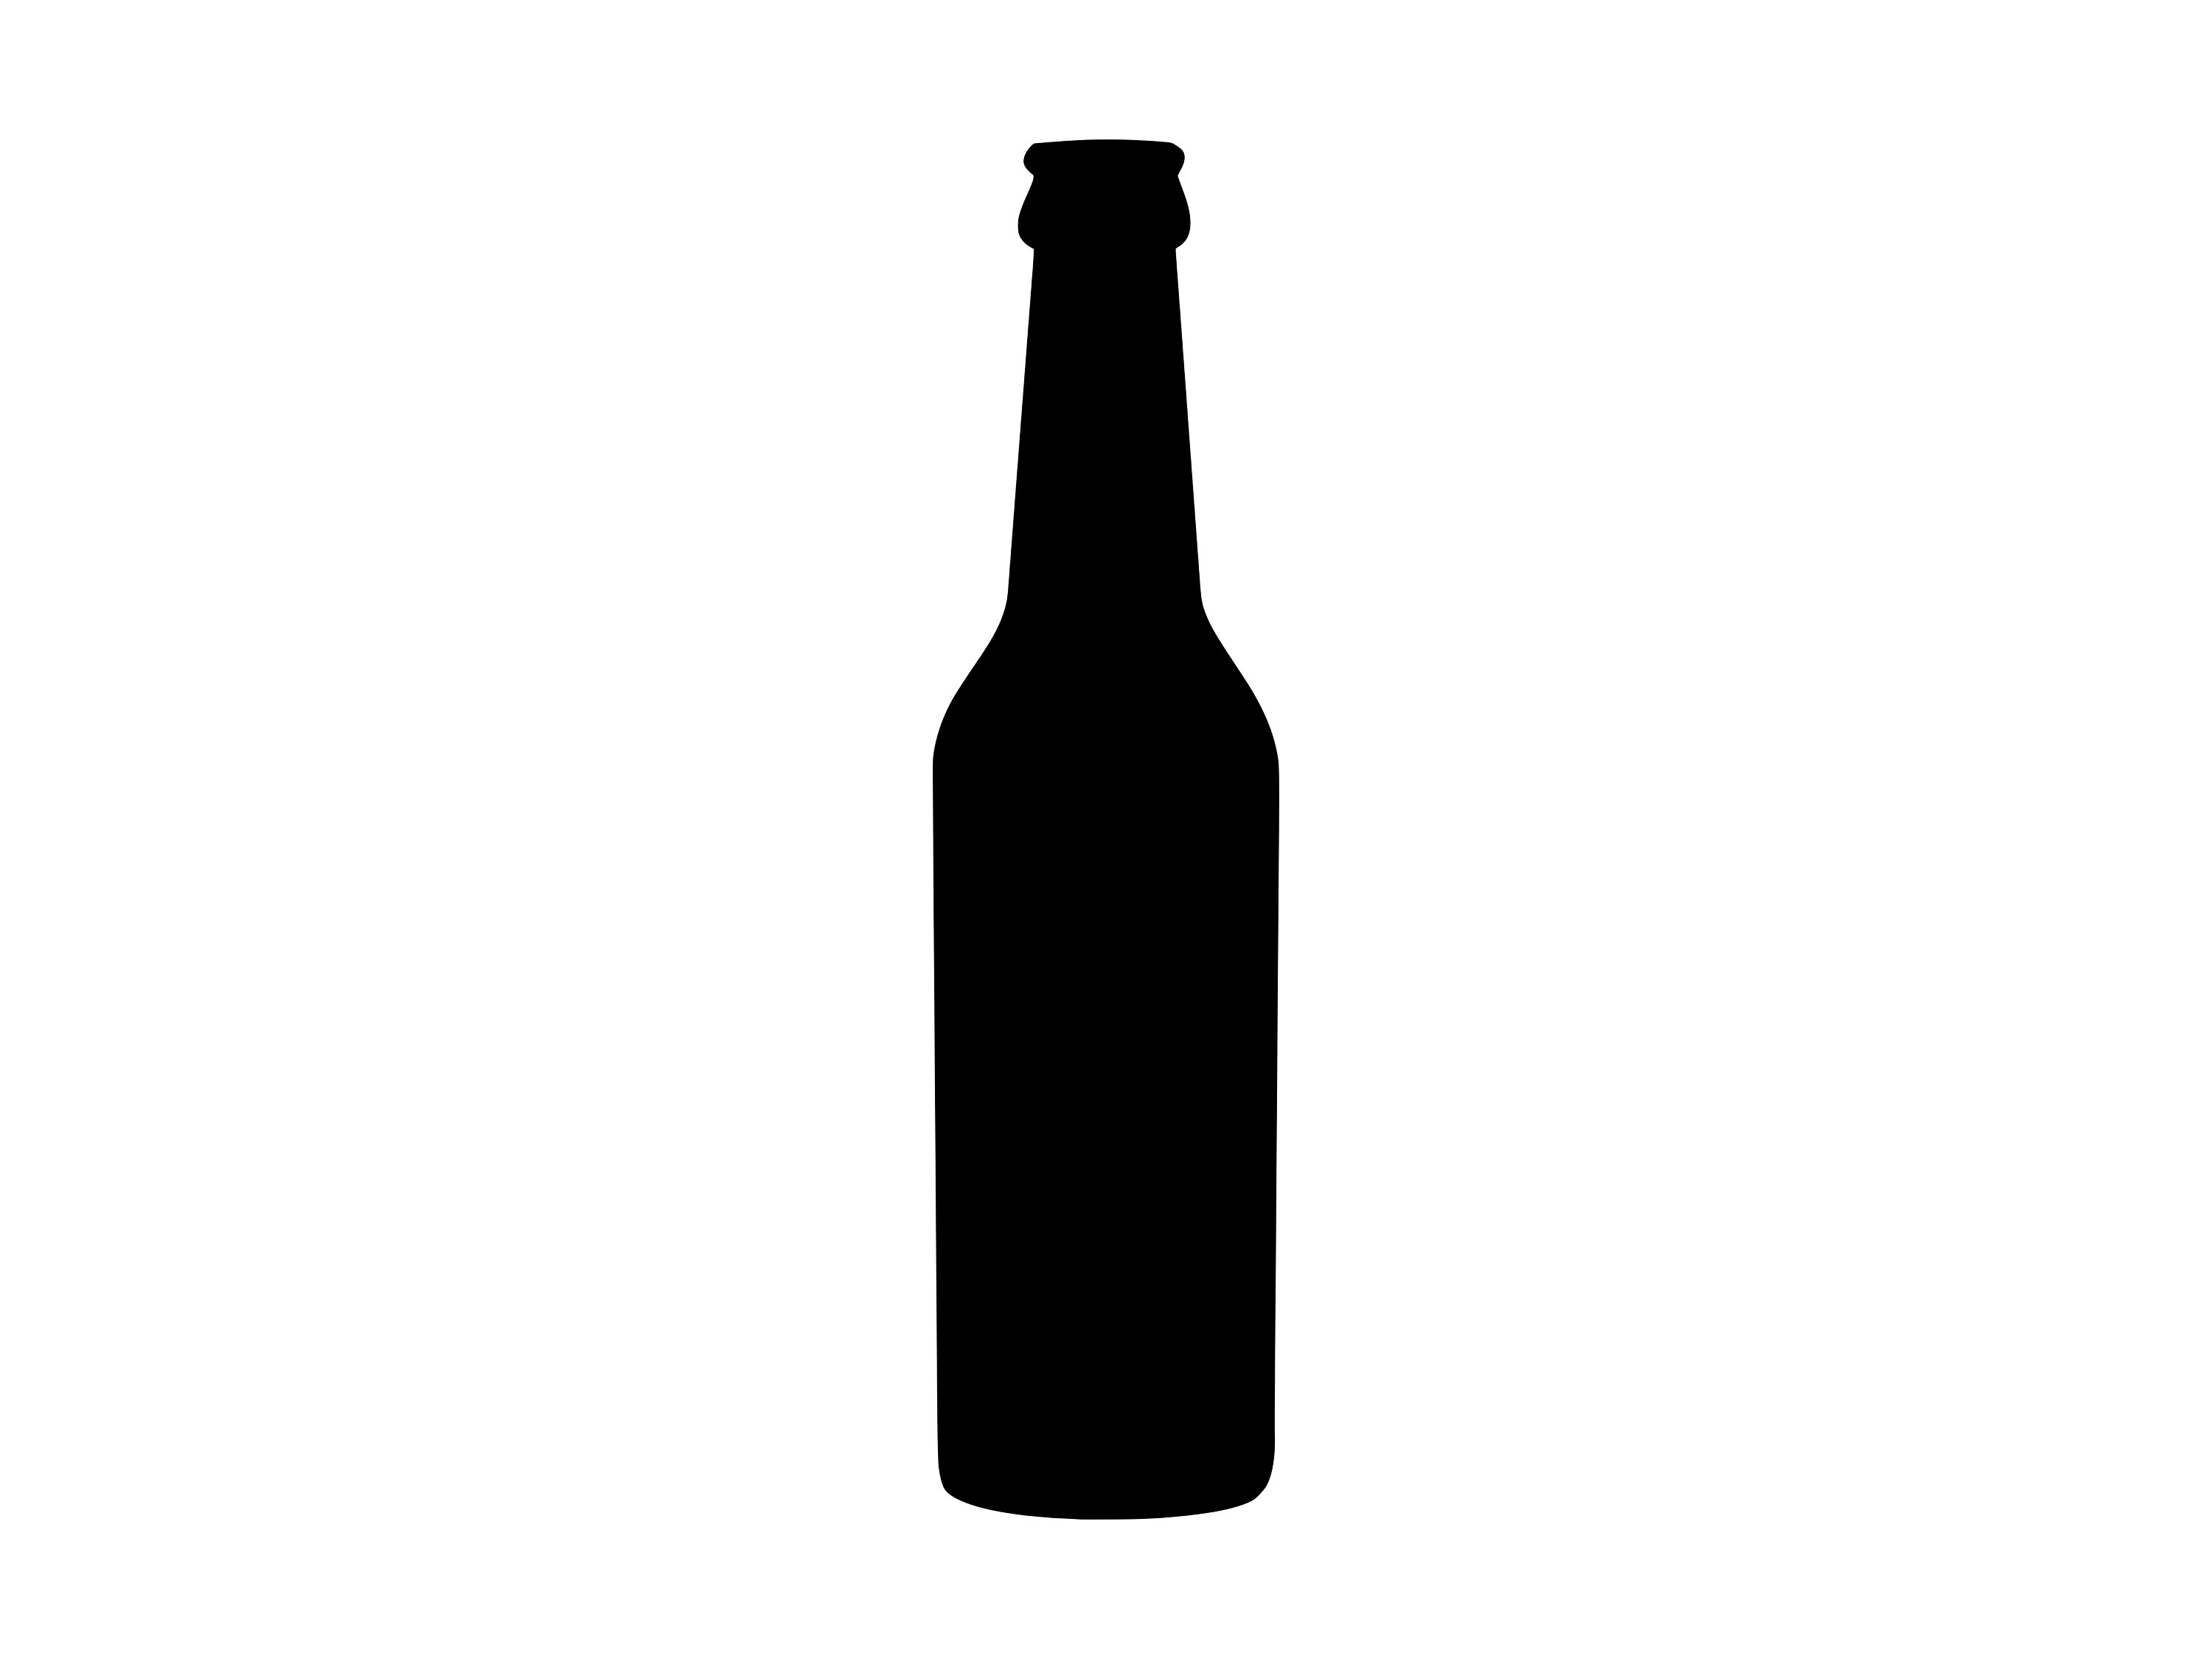 beer bottle silhouette principles of graphic art bottle silhouettes beer bottle silhouette